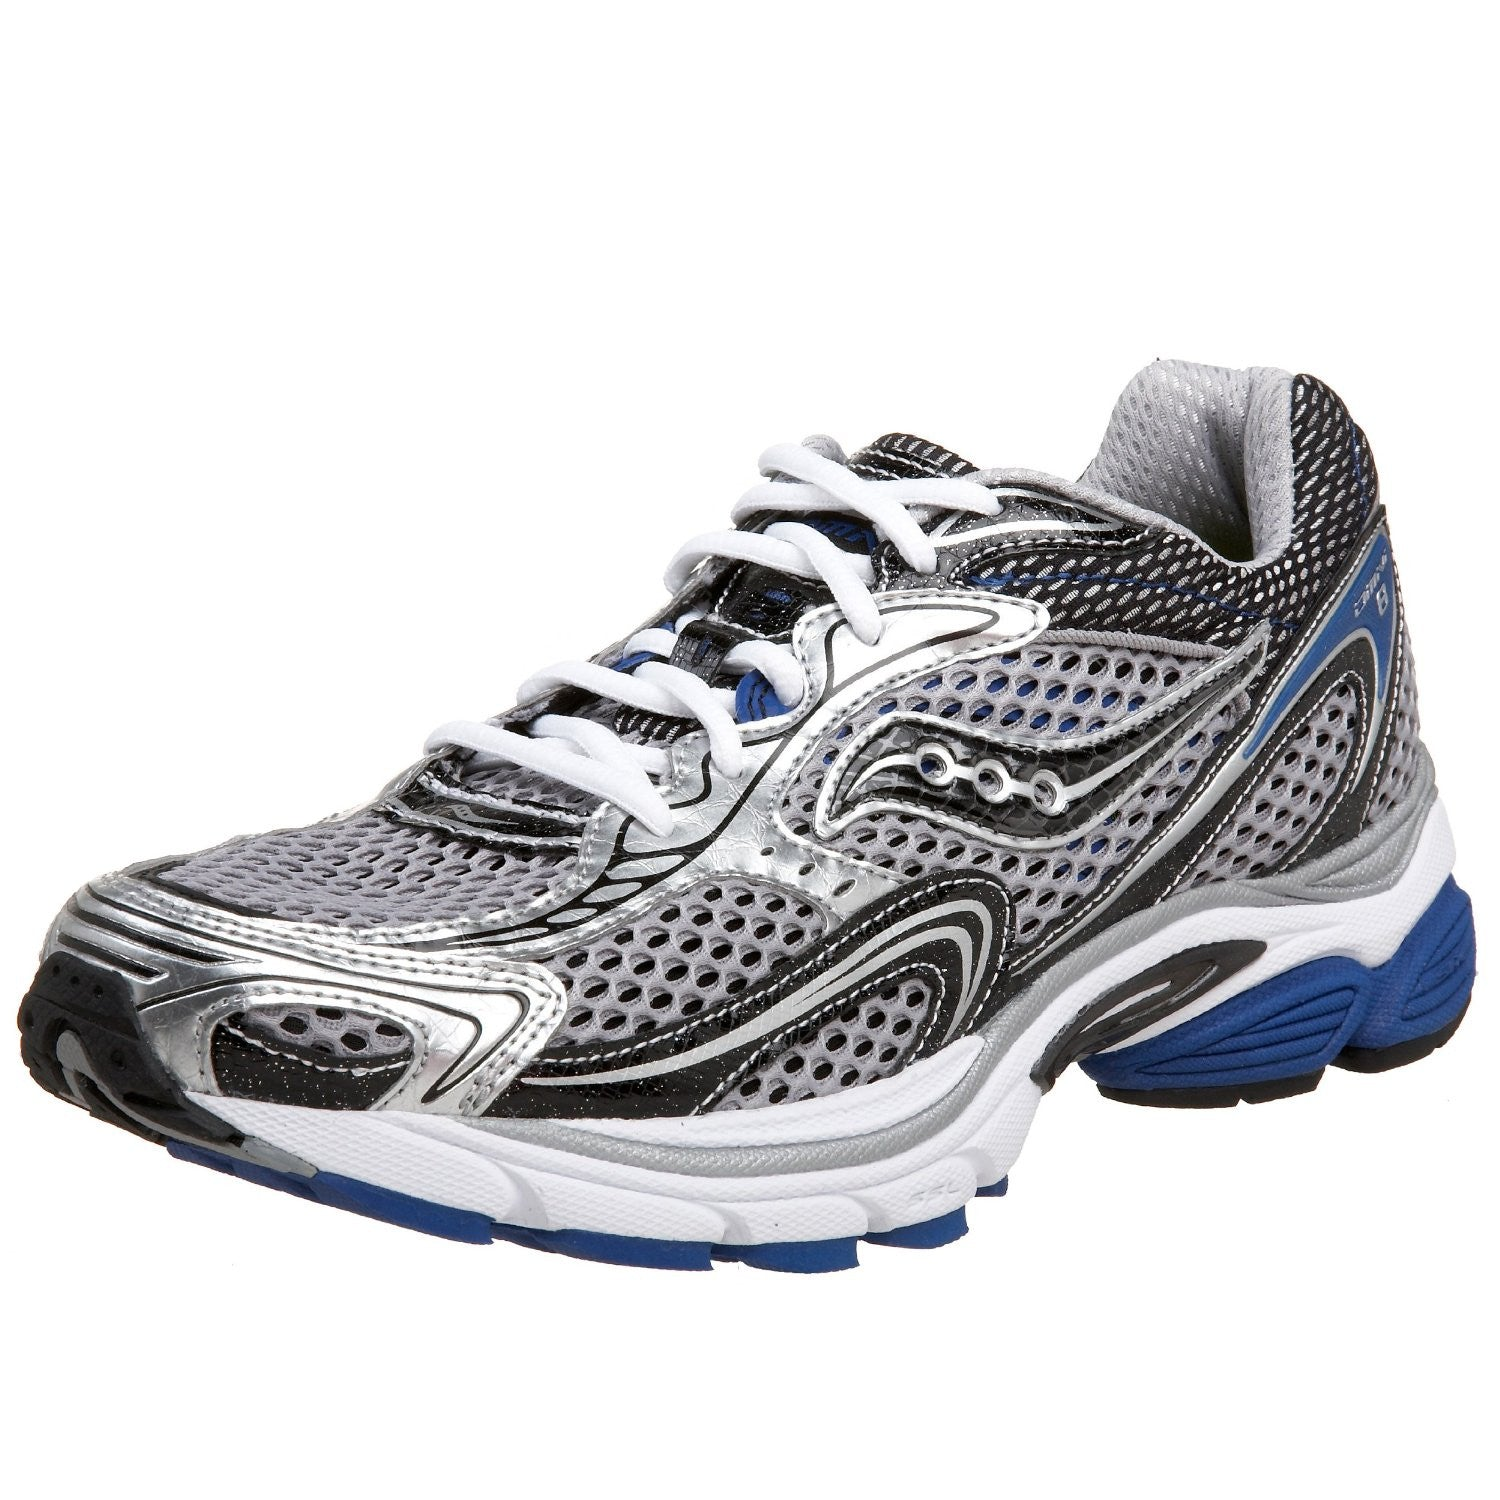 8aabe48831 Men's Saucony Grid Omni 8 •Silver/Blue• Running Shoe